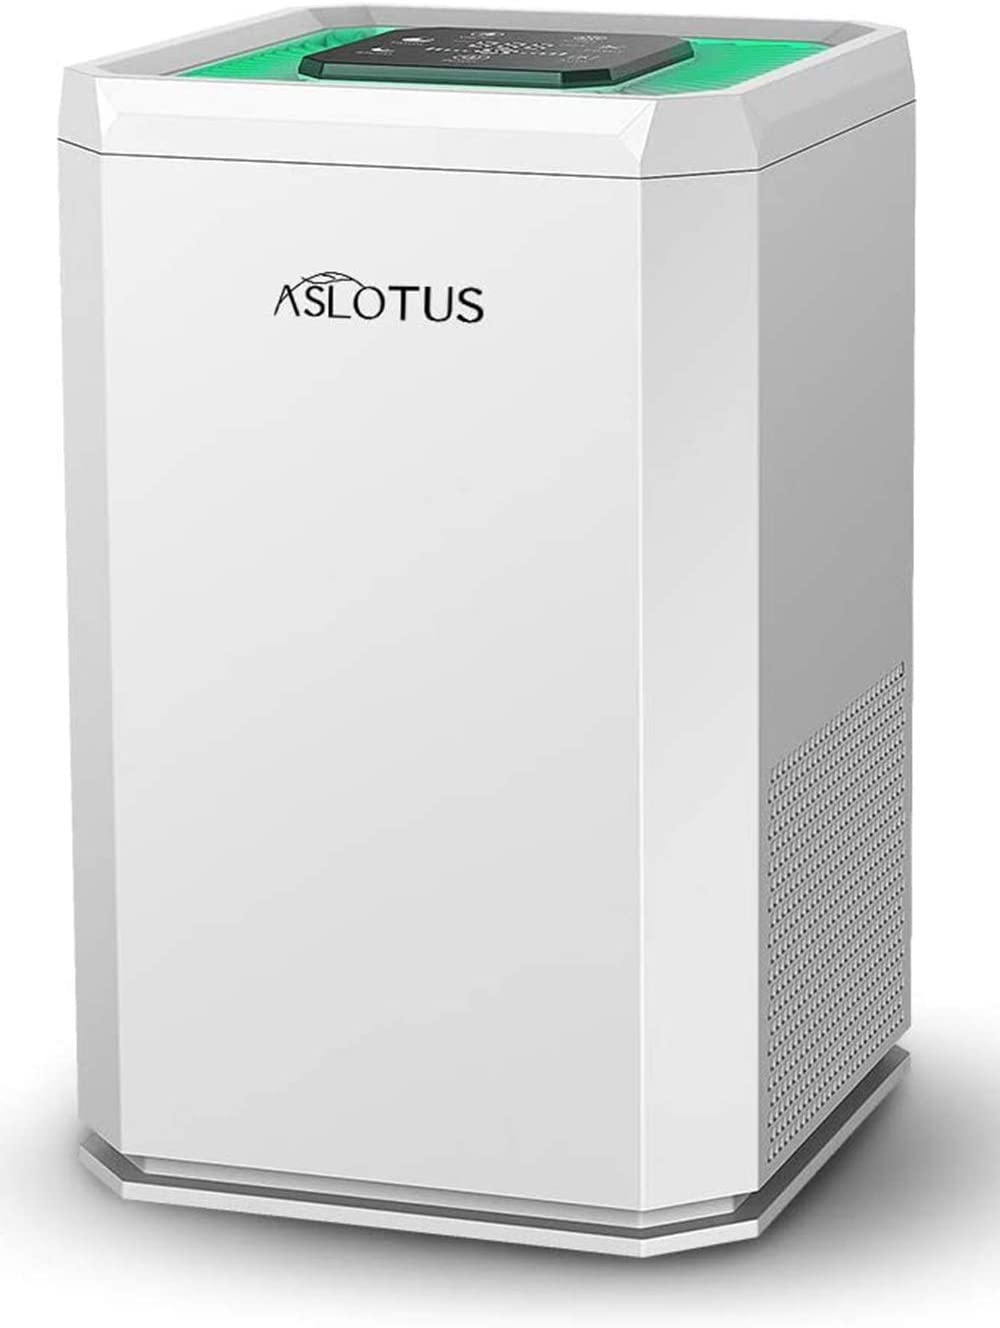 ASLOTUS Air Purifier with True HEPA Filter Cleaner for Home, Bedroom, Office - Filters Allergies, Pollen, Smoke, Pet Dander, Dust, Mold, Odors - 100% Ozone Free, Lock Set, 26dB Quiet, KJ130V1